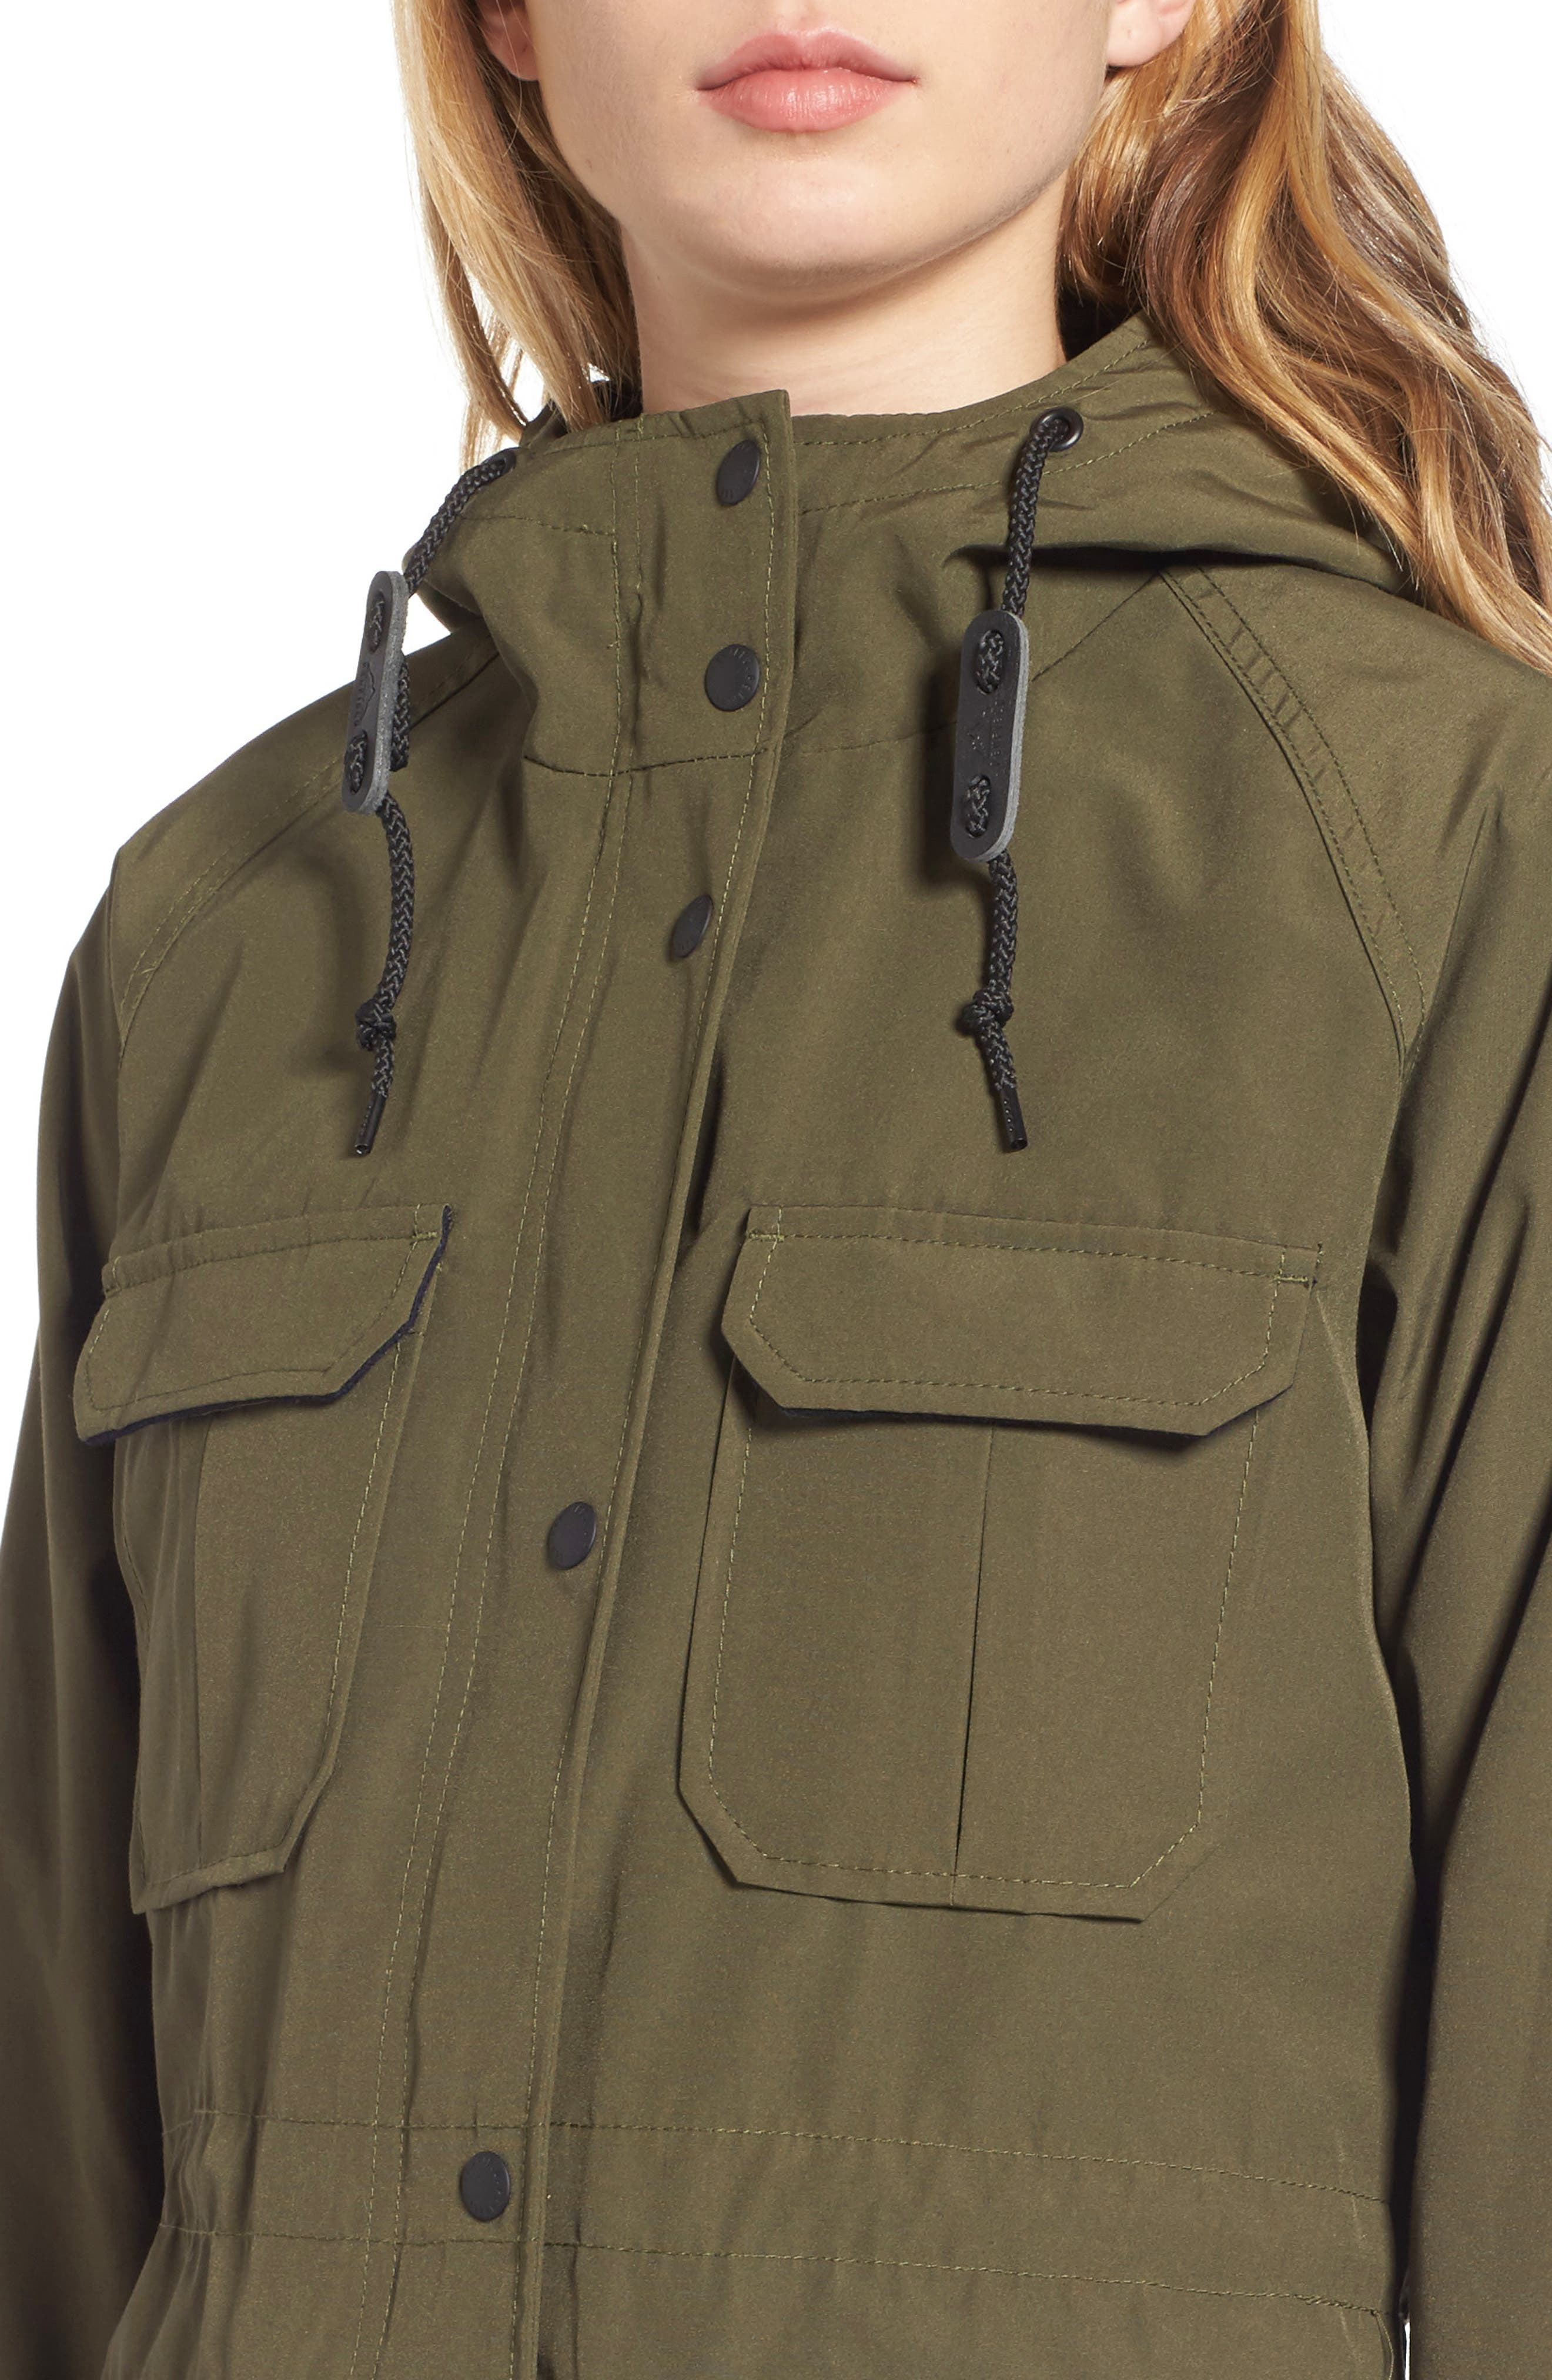 PENFIELD,                             'Kasson' Double Layer Mountain Parka,                             Alternate thumbnail 4, color,                             307